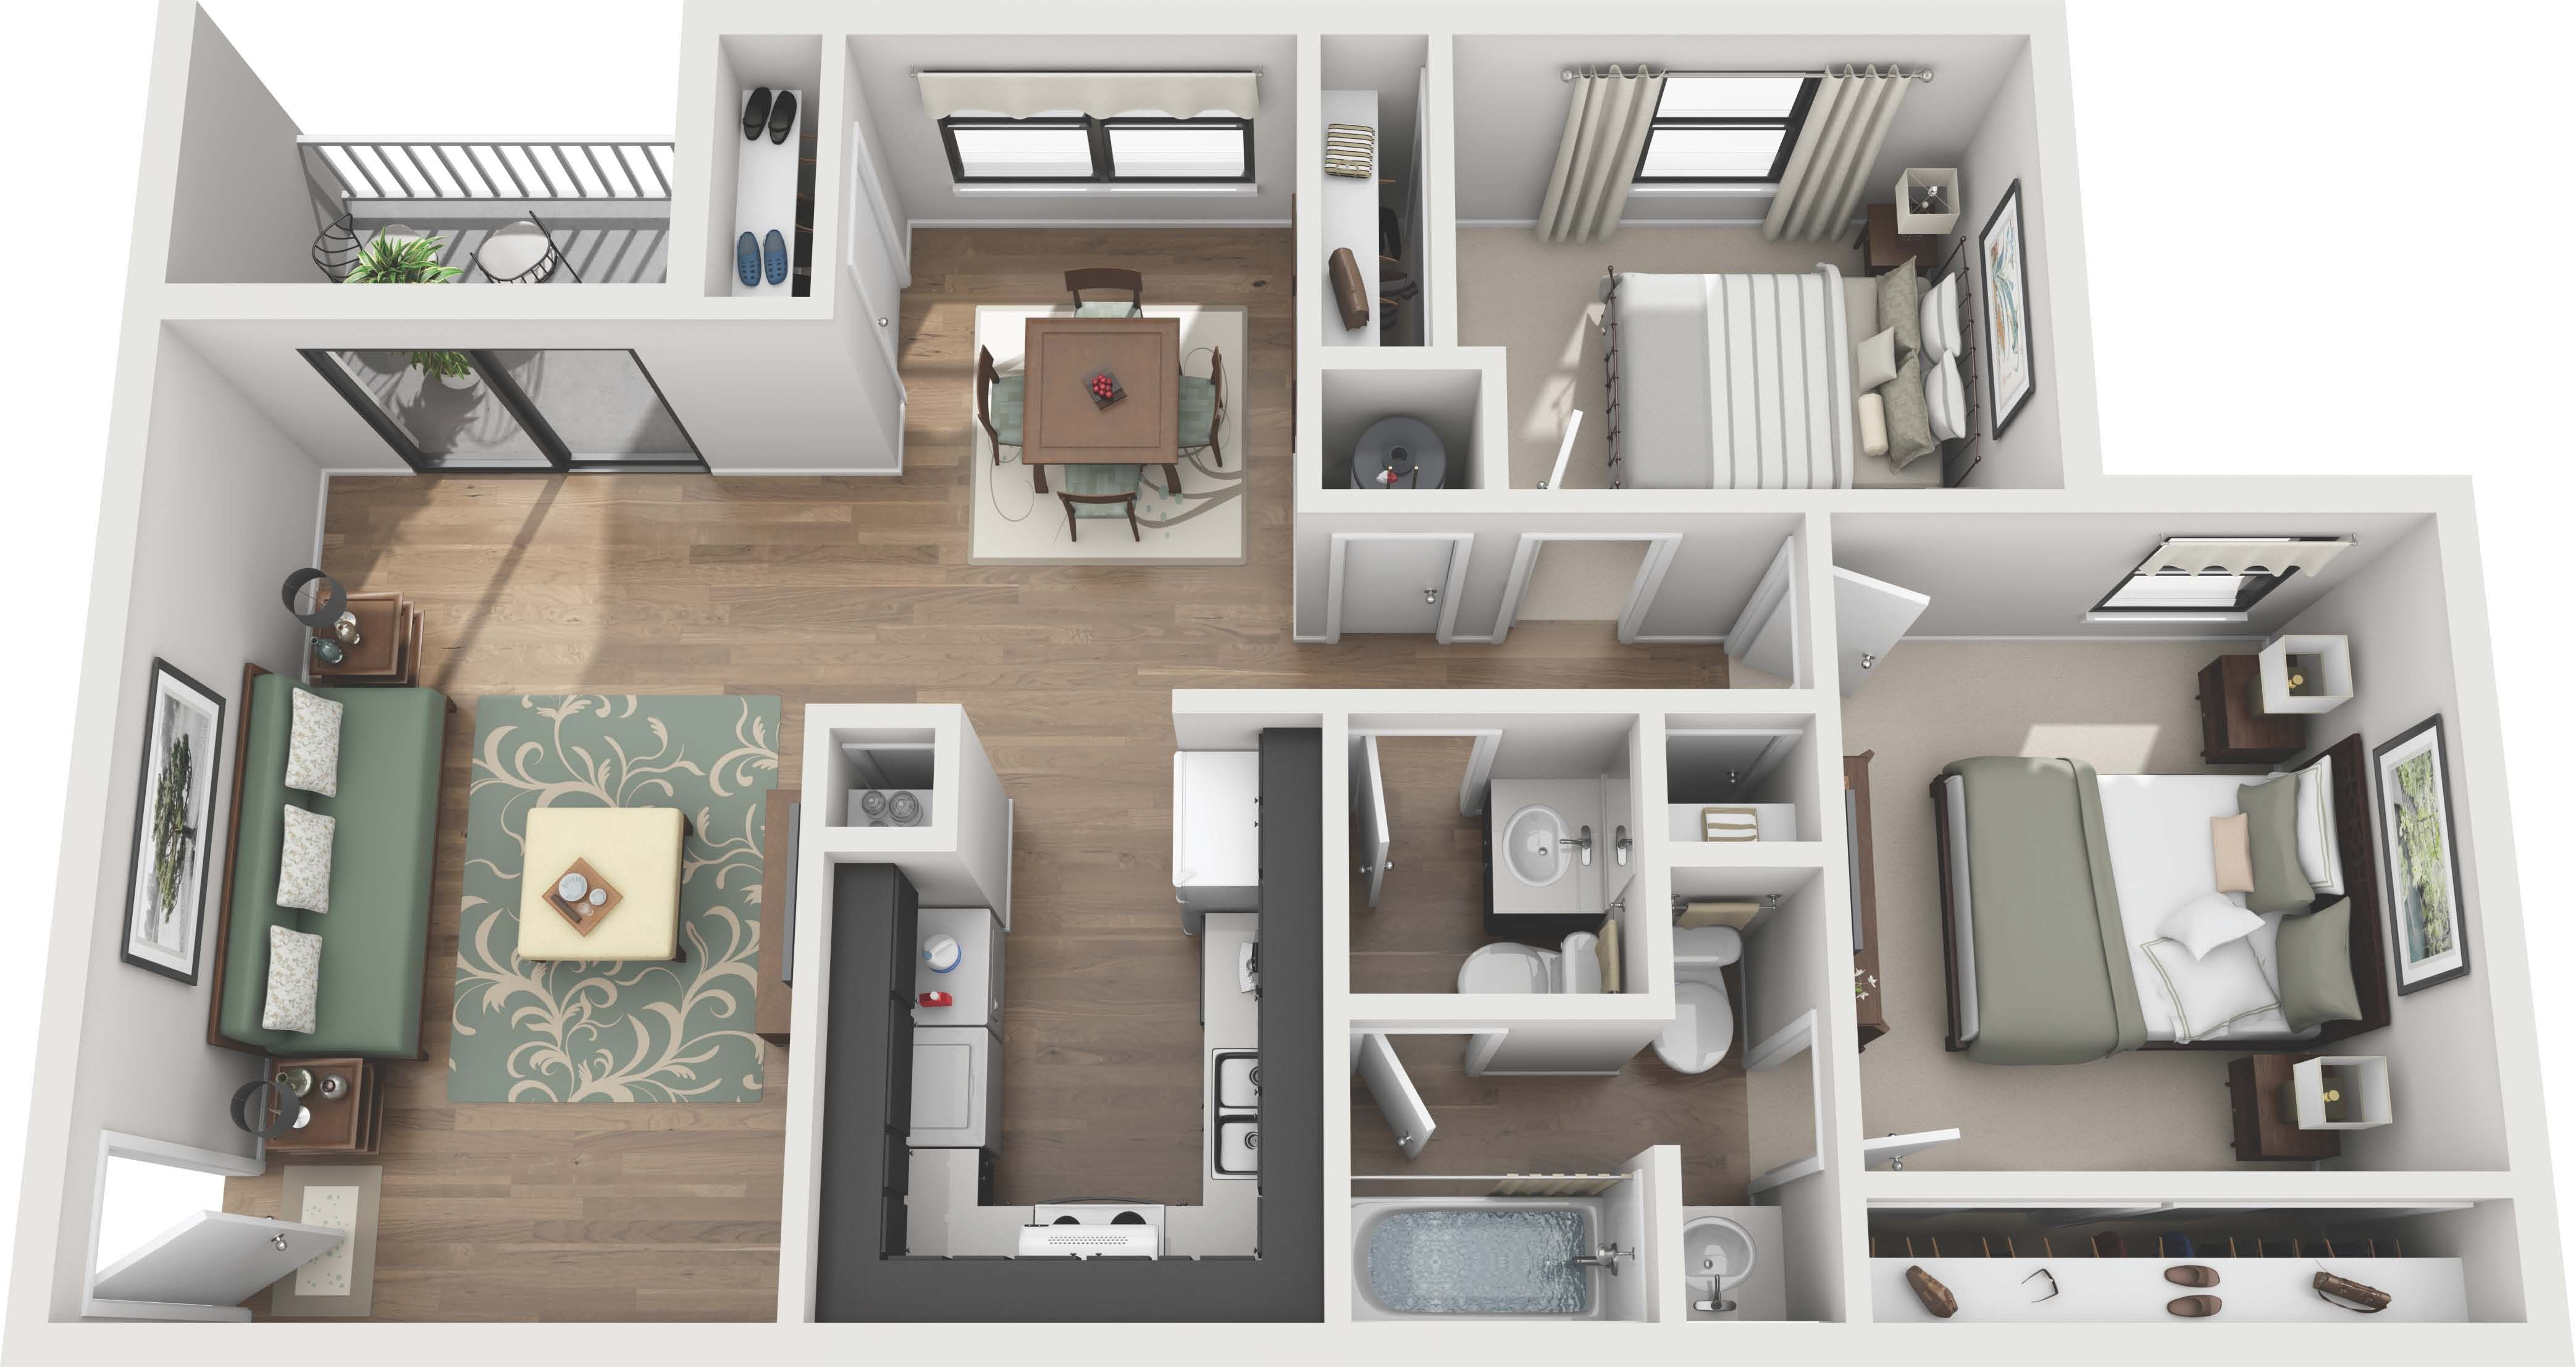 50 Plans En 3d D Appartements Et Maisons Page 4 Sur 6 Apartment Bedroom Design Small Apartment Floor Plans Bedroom Layouts